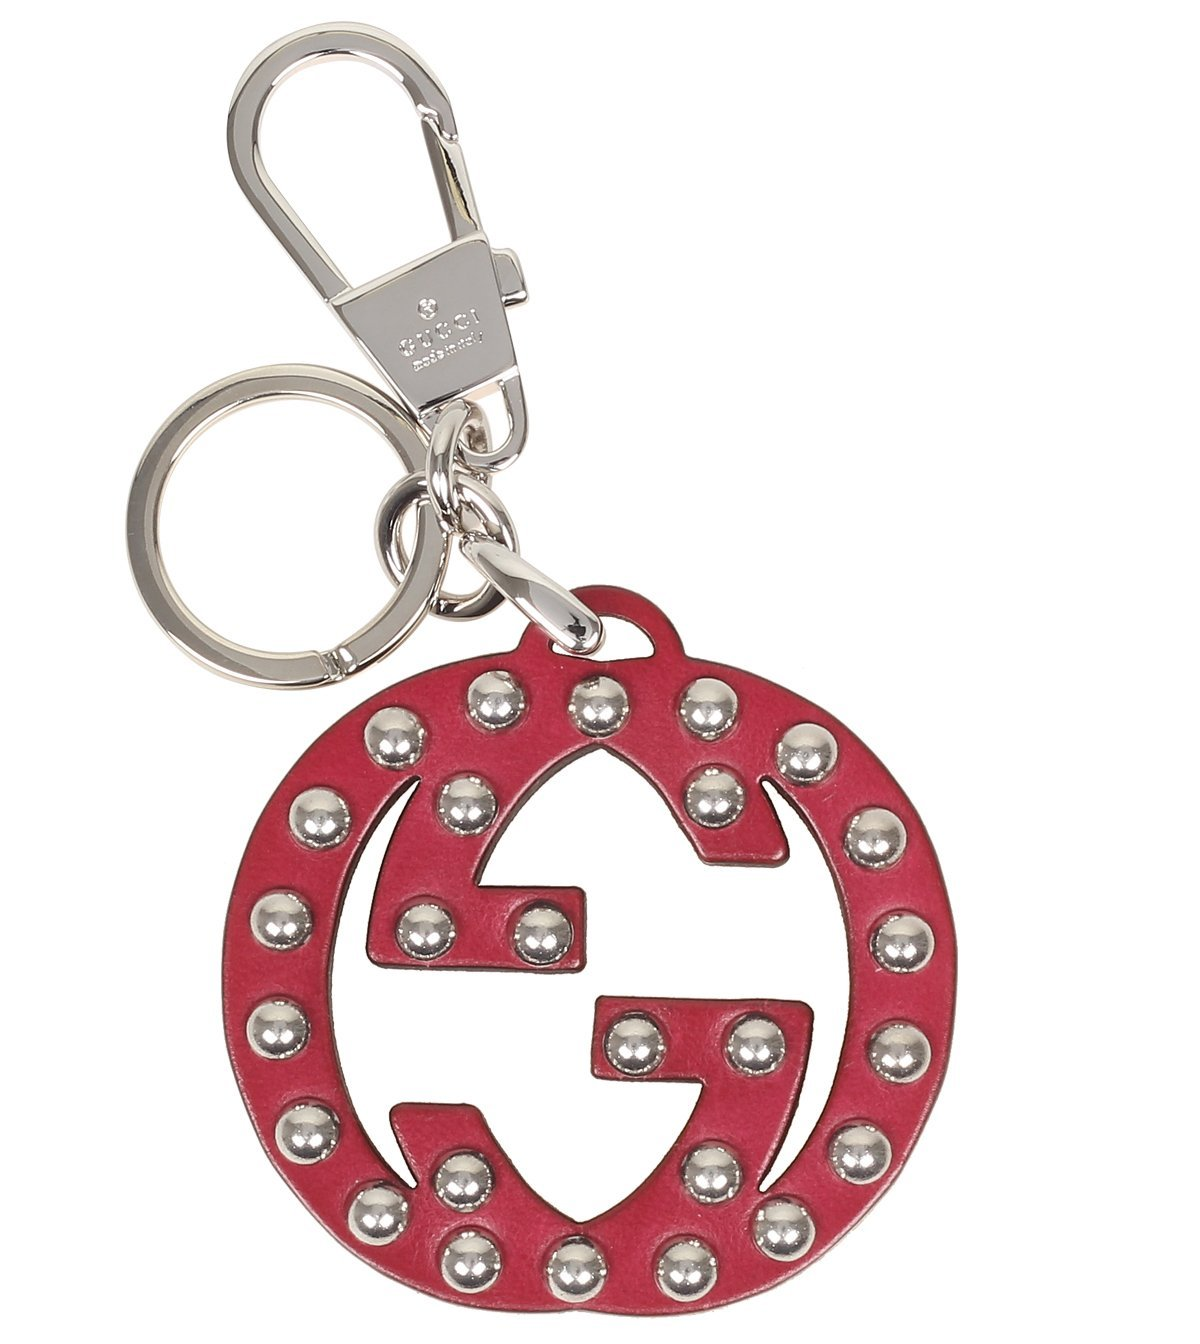 Gucci Interlocking GG Studded Red Leather Key Ring Charm 389053